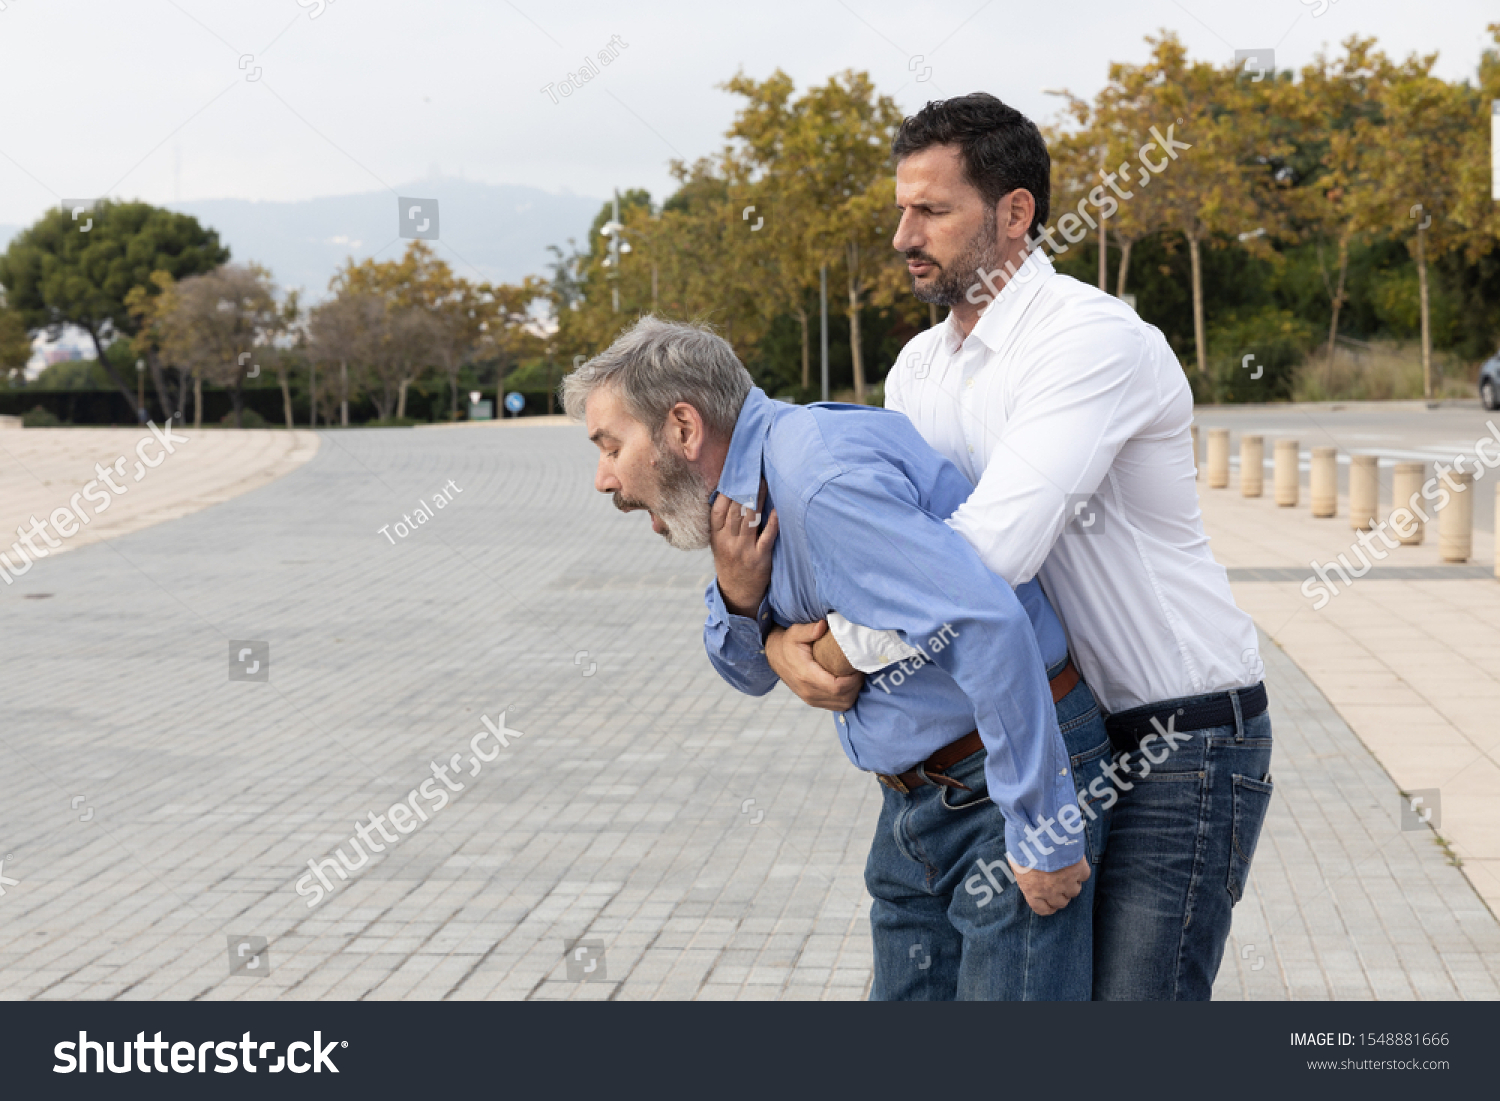 Man doing the Heimlich maneuver to an old man with suffocation due to obstruction of the airway with food #1548881666